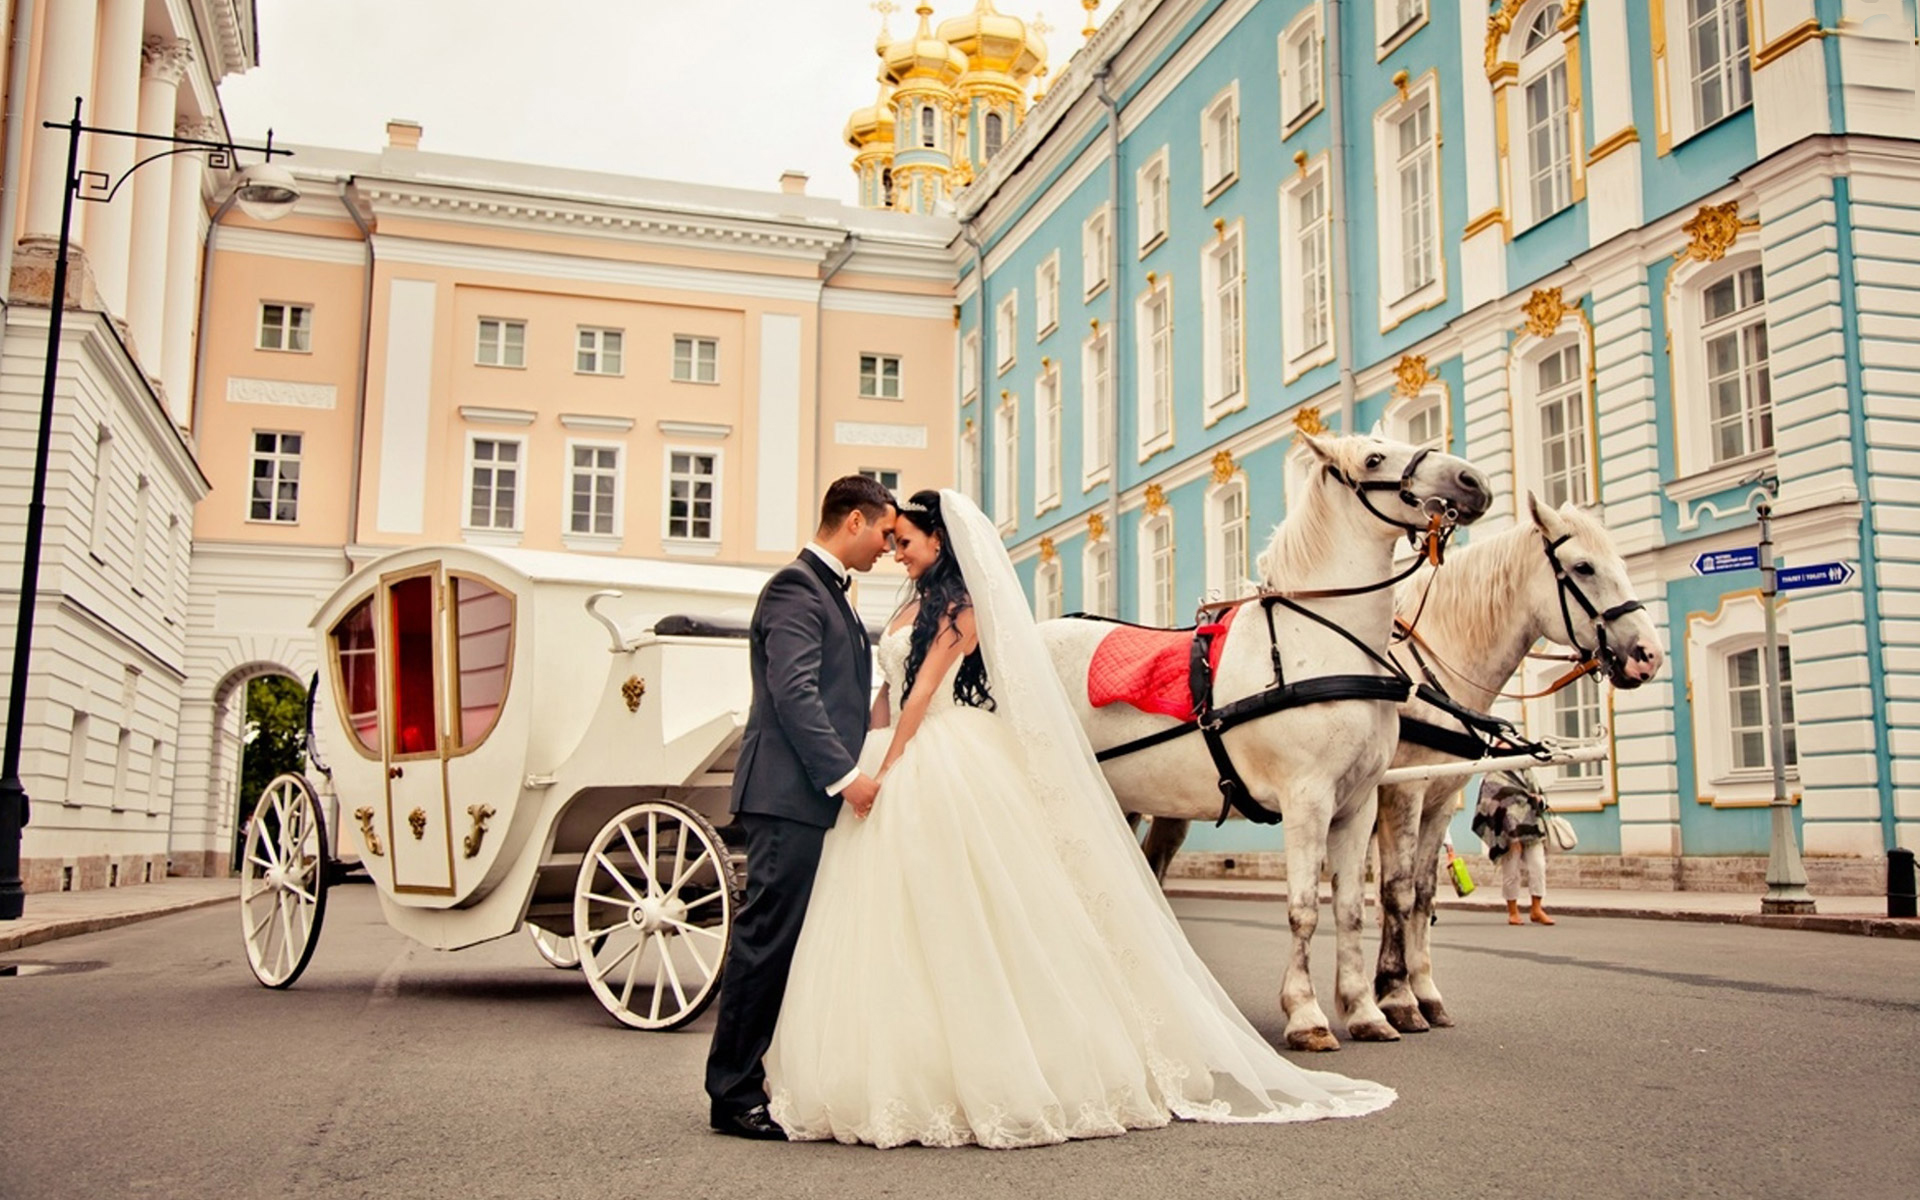 Hd wallpaper couple - Wedding Couple Hd Wallpaper